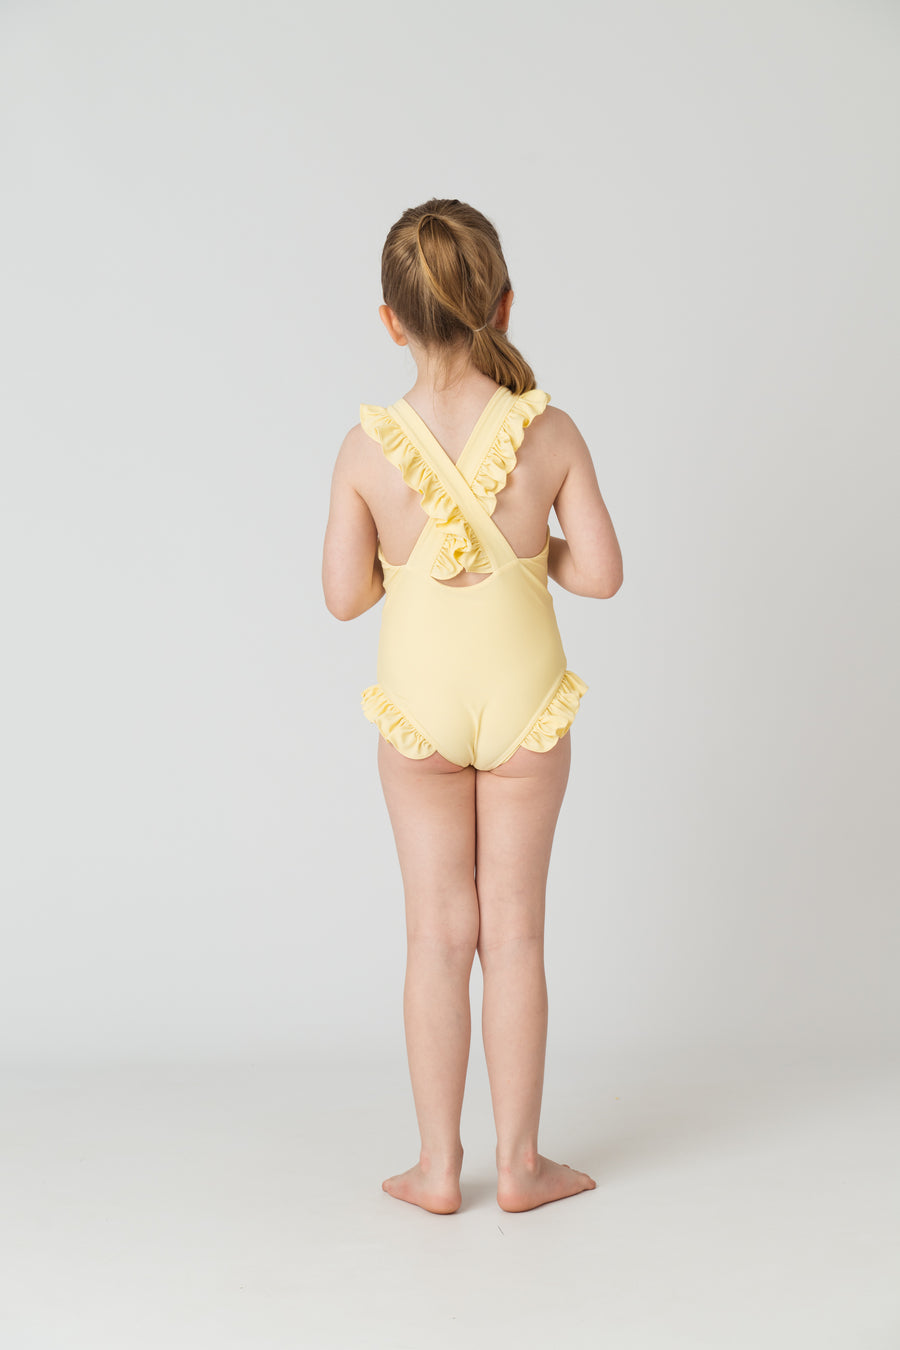 Tabitha Girls One Piece in Citrine